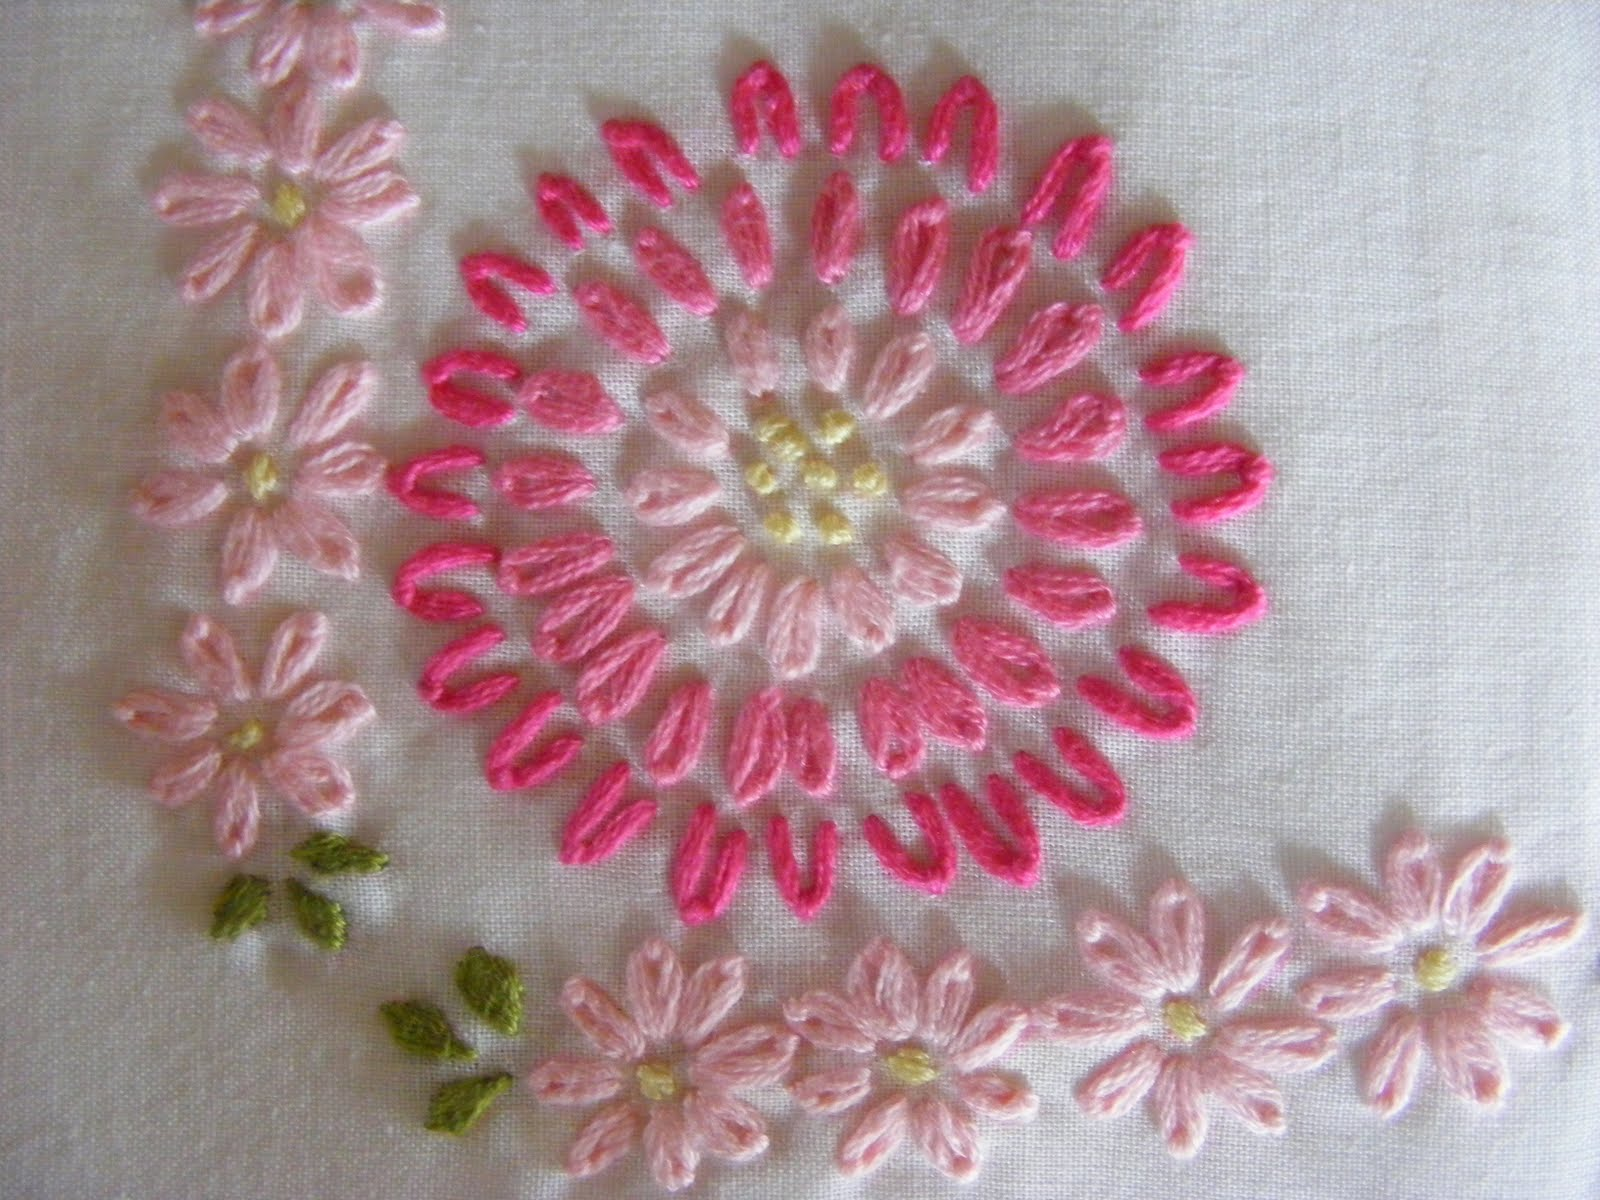 Embroidery Patterns For Pillowcases  Free Embroidery Patterns